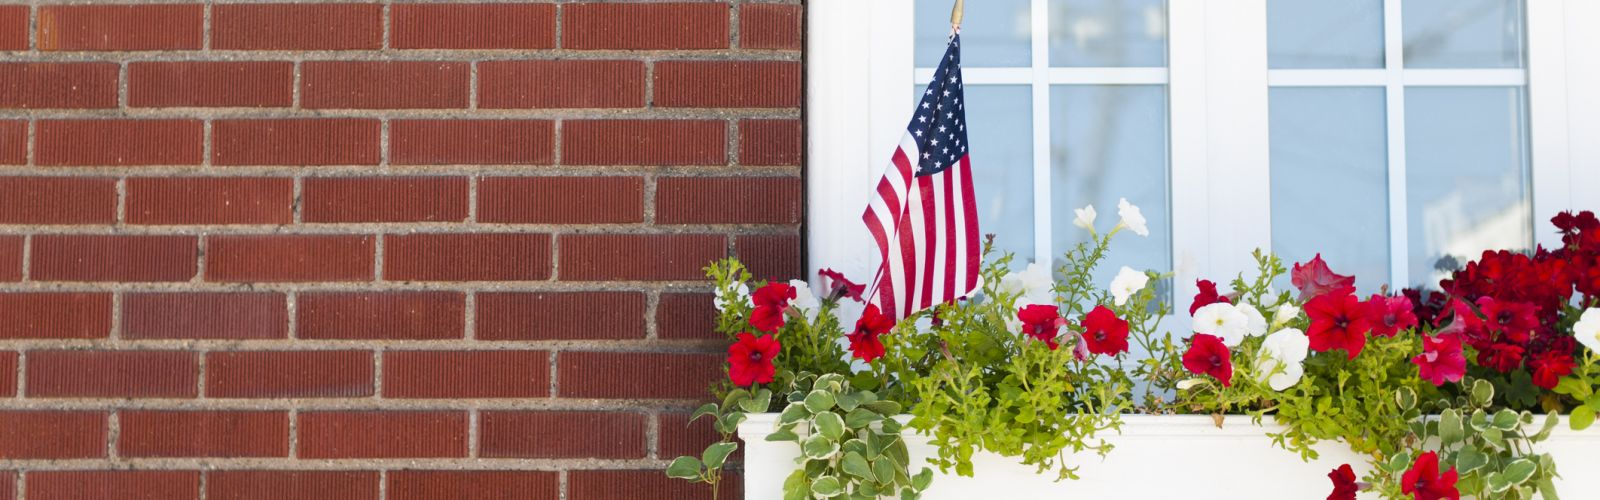 red and white flowers in window box on a brick building